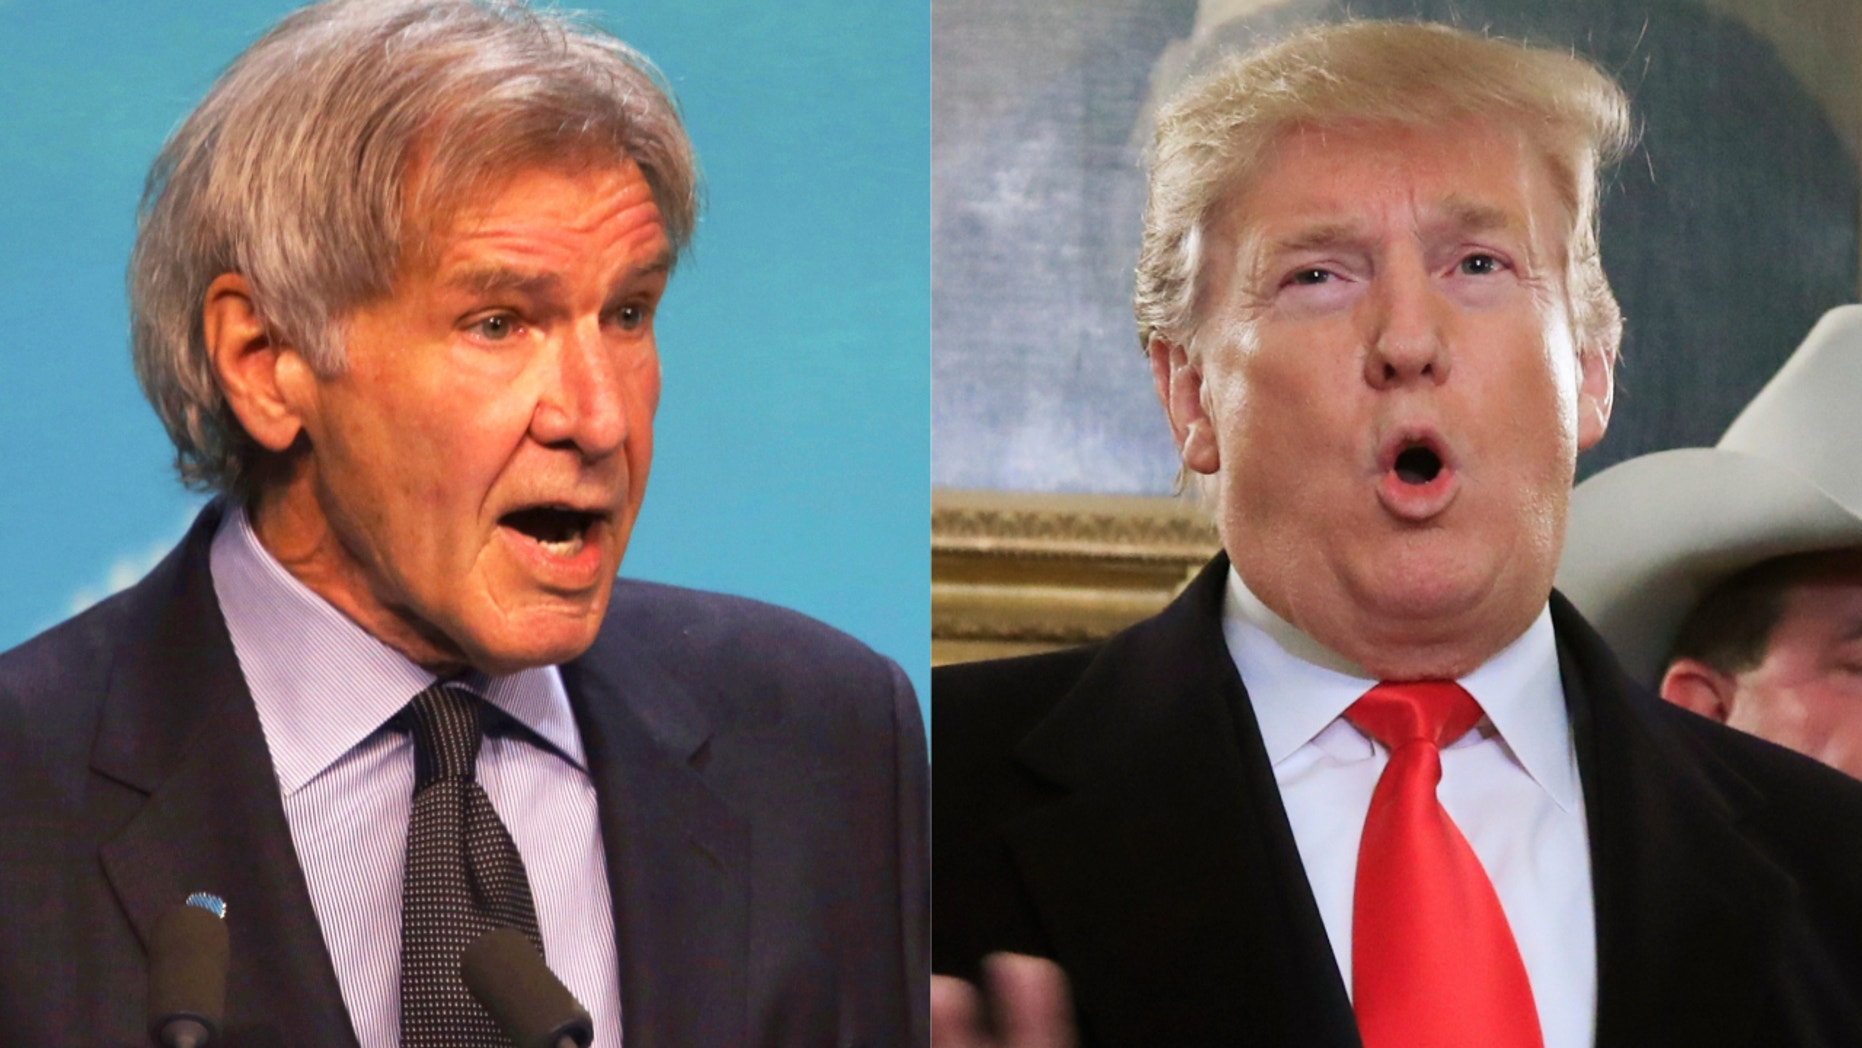 Harrison Ford Slams Donald Trump Others Who Denigrate